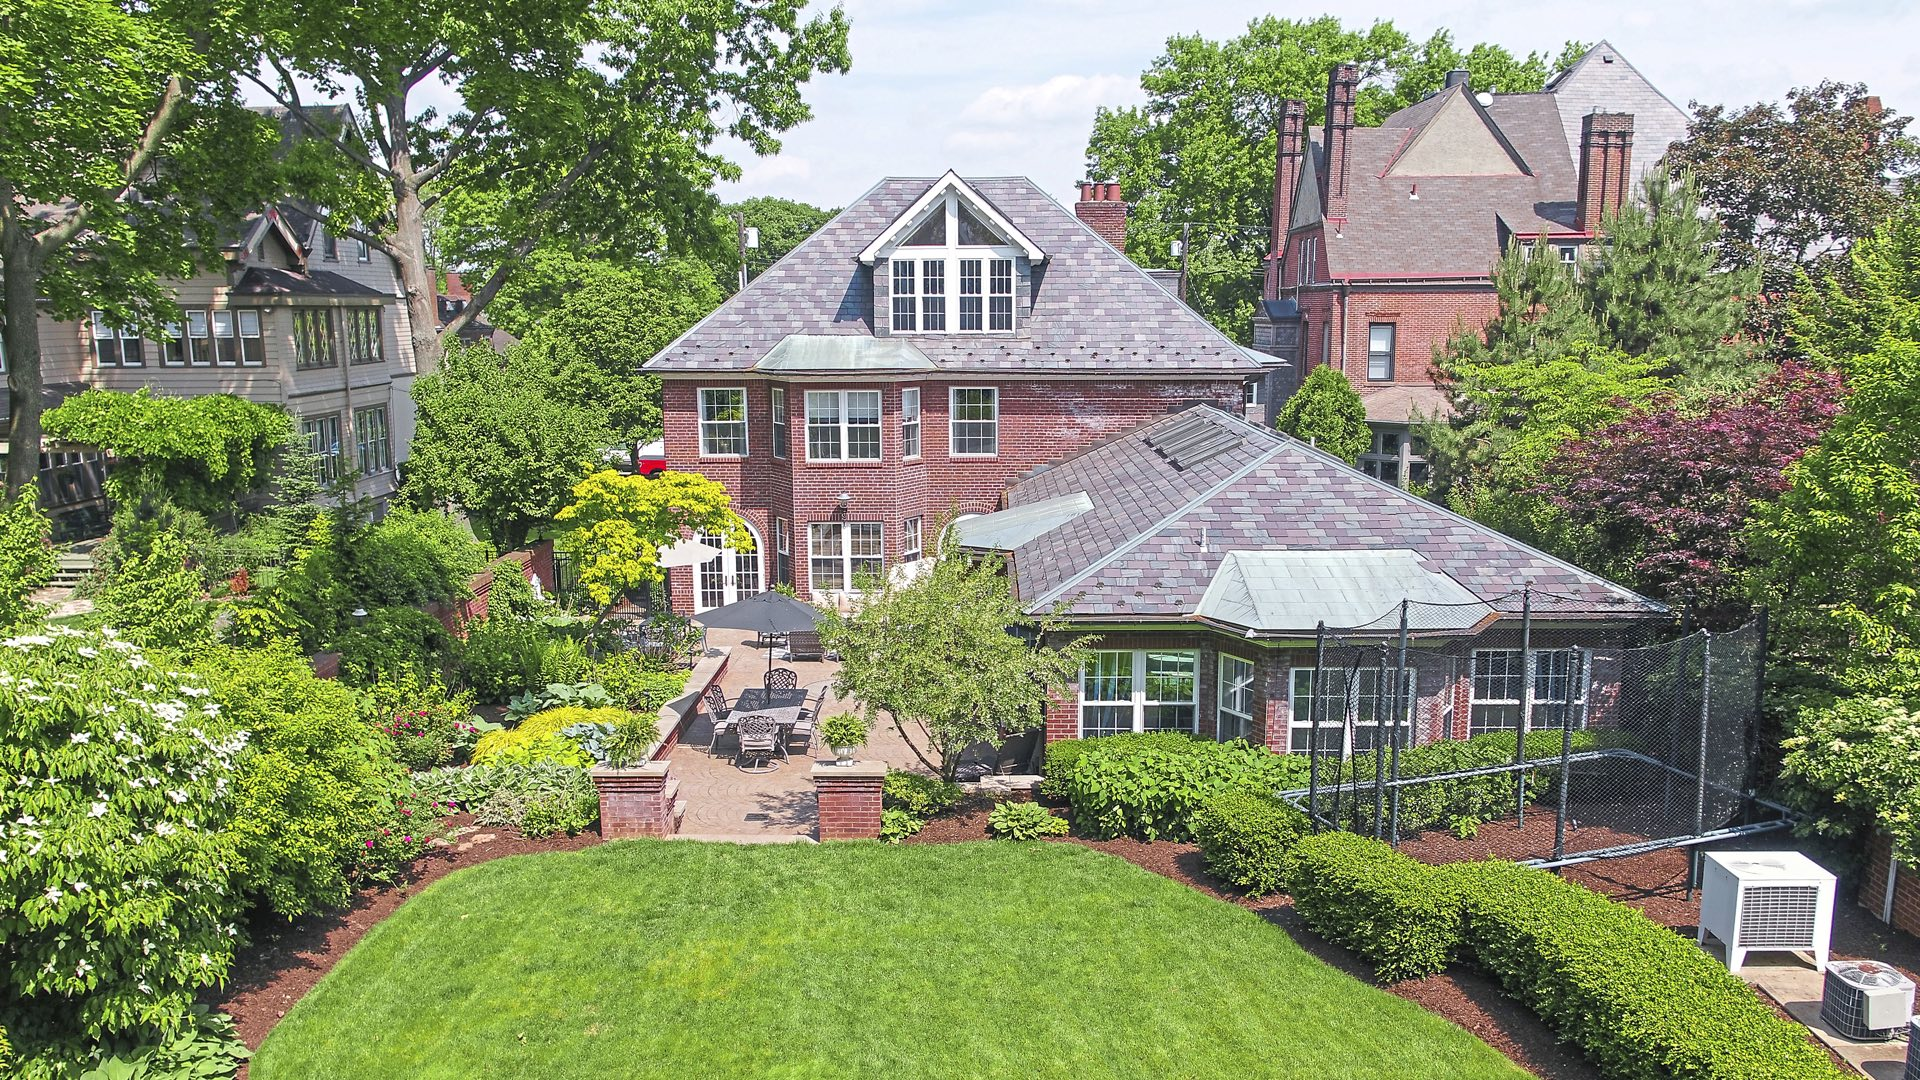 The gardens and pool house of 5228 Westminster Road, Shadyside. (courtesy Howard Hanna Real Estate)